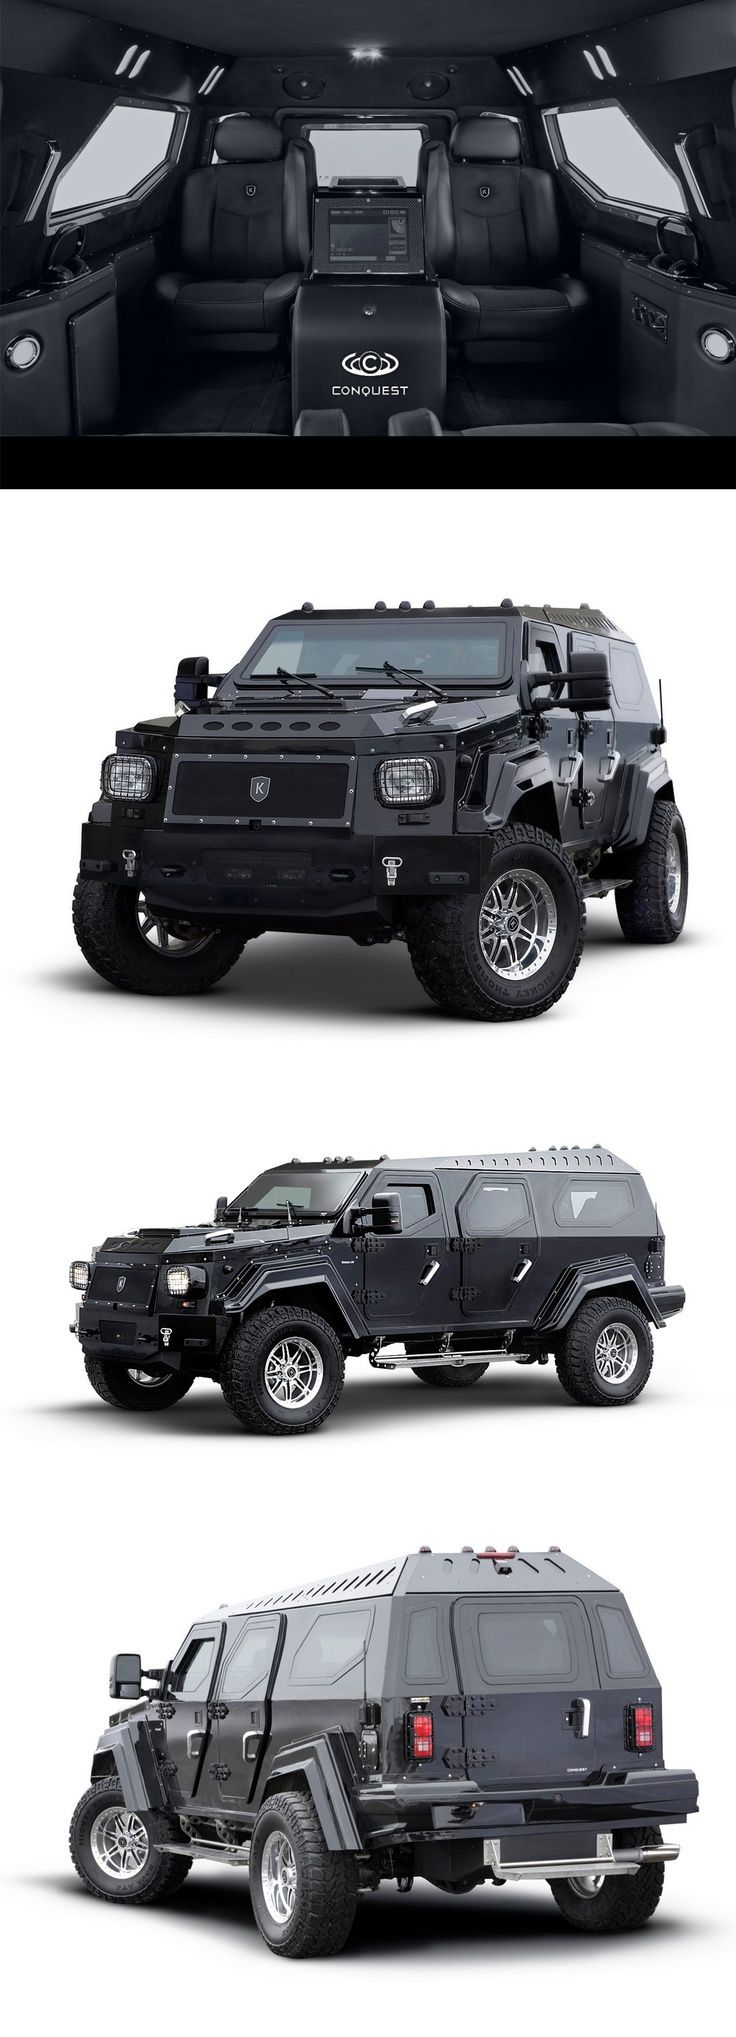 Conquest Knight XV. One day I will own one and it will be my zombie apocalypse vehicle.